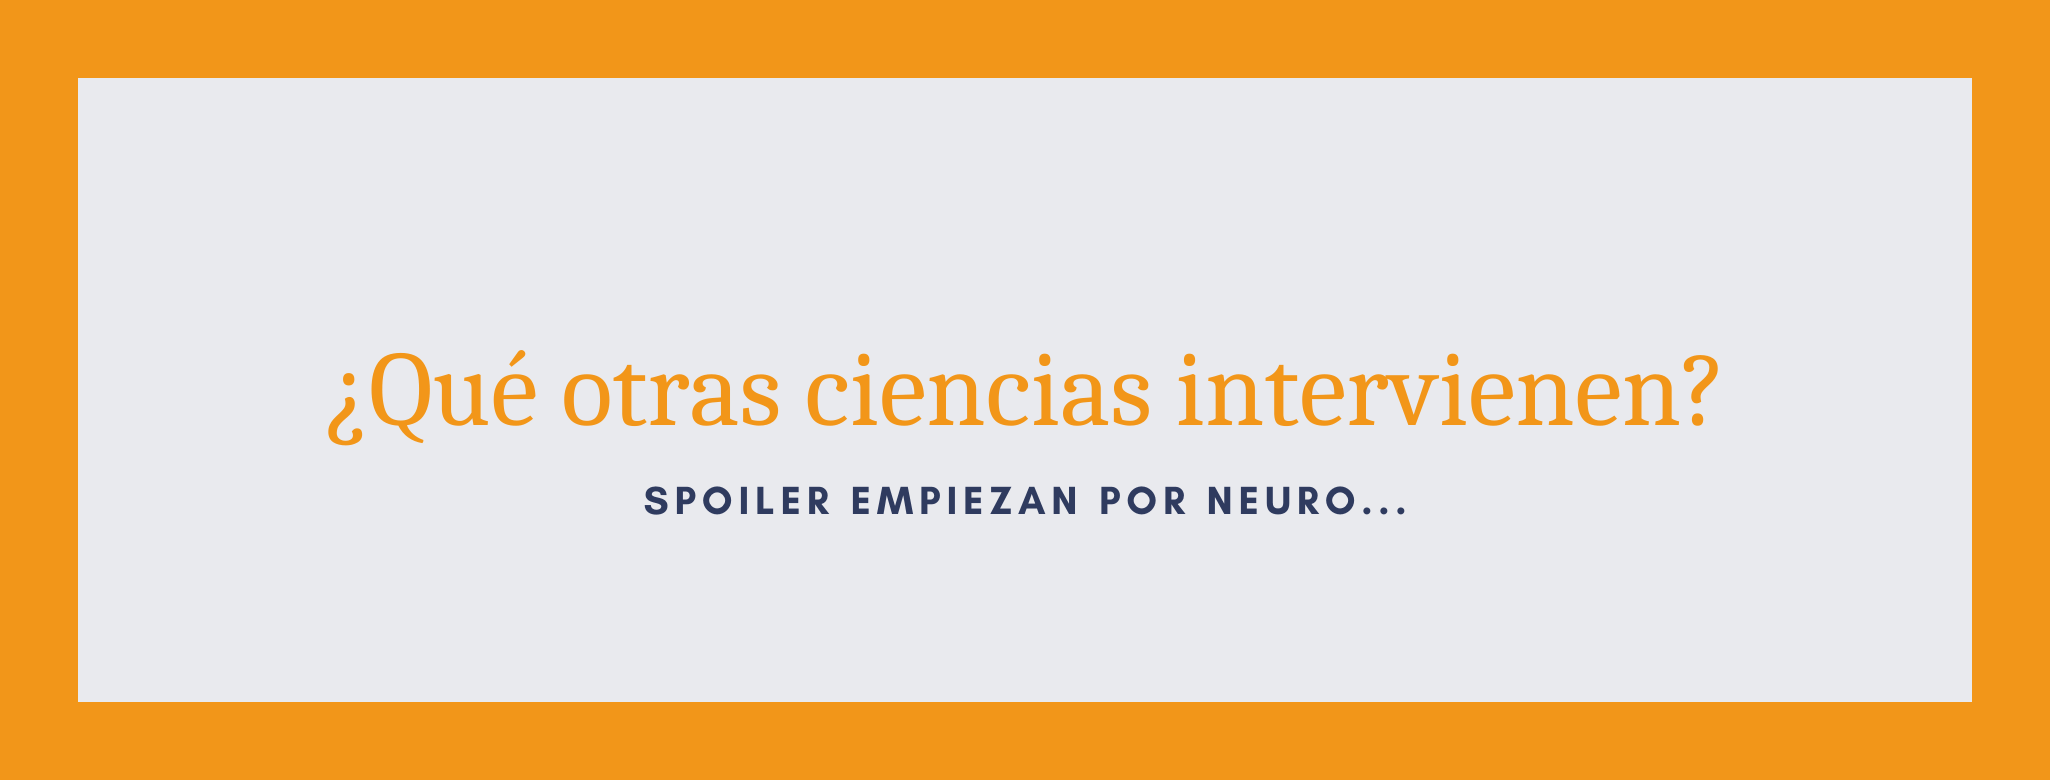 Ciencias que intervienen en el neuromarketing